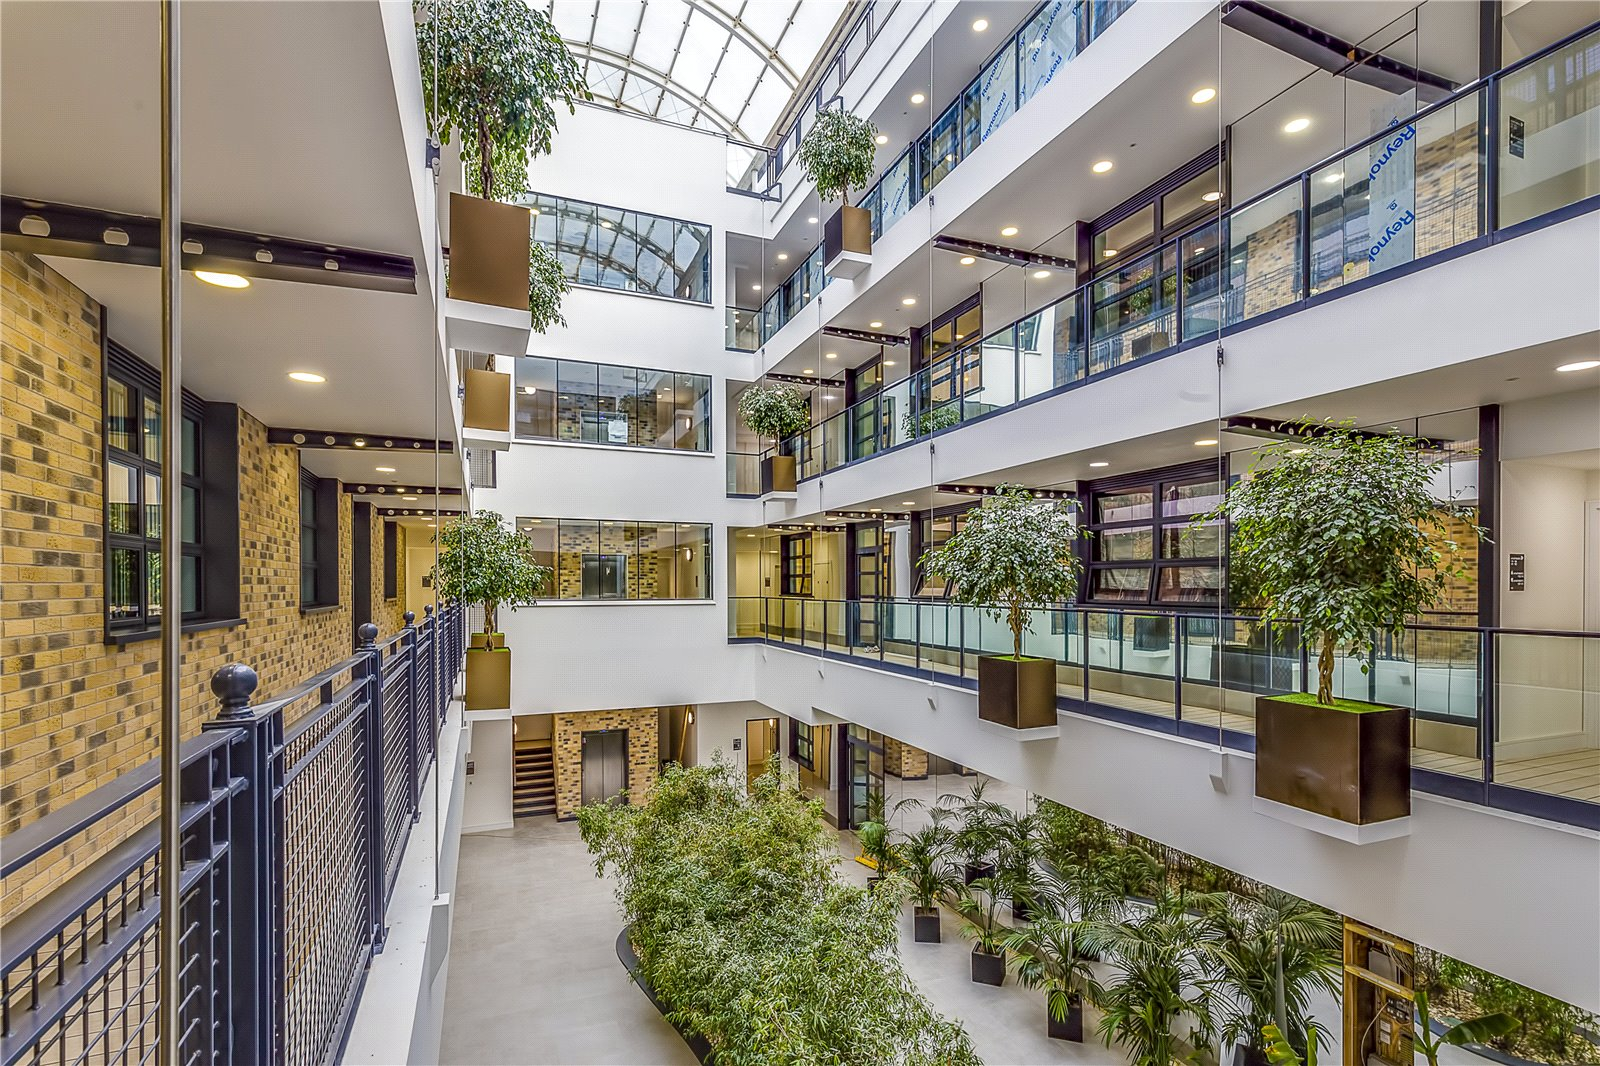 Apartment for Rent at Carlow House, Carlow Street, London, NW1 Carlow House, Carlow Street, London, NW1